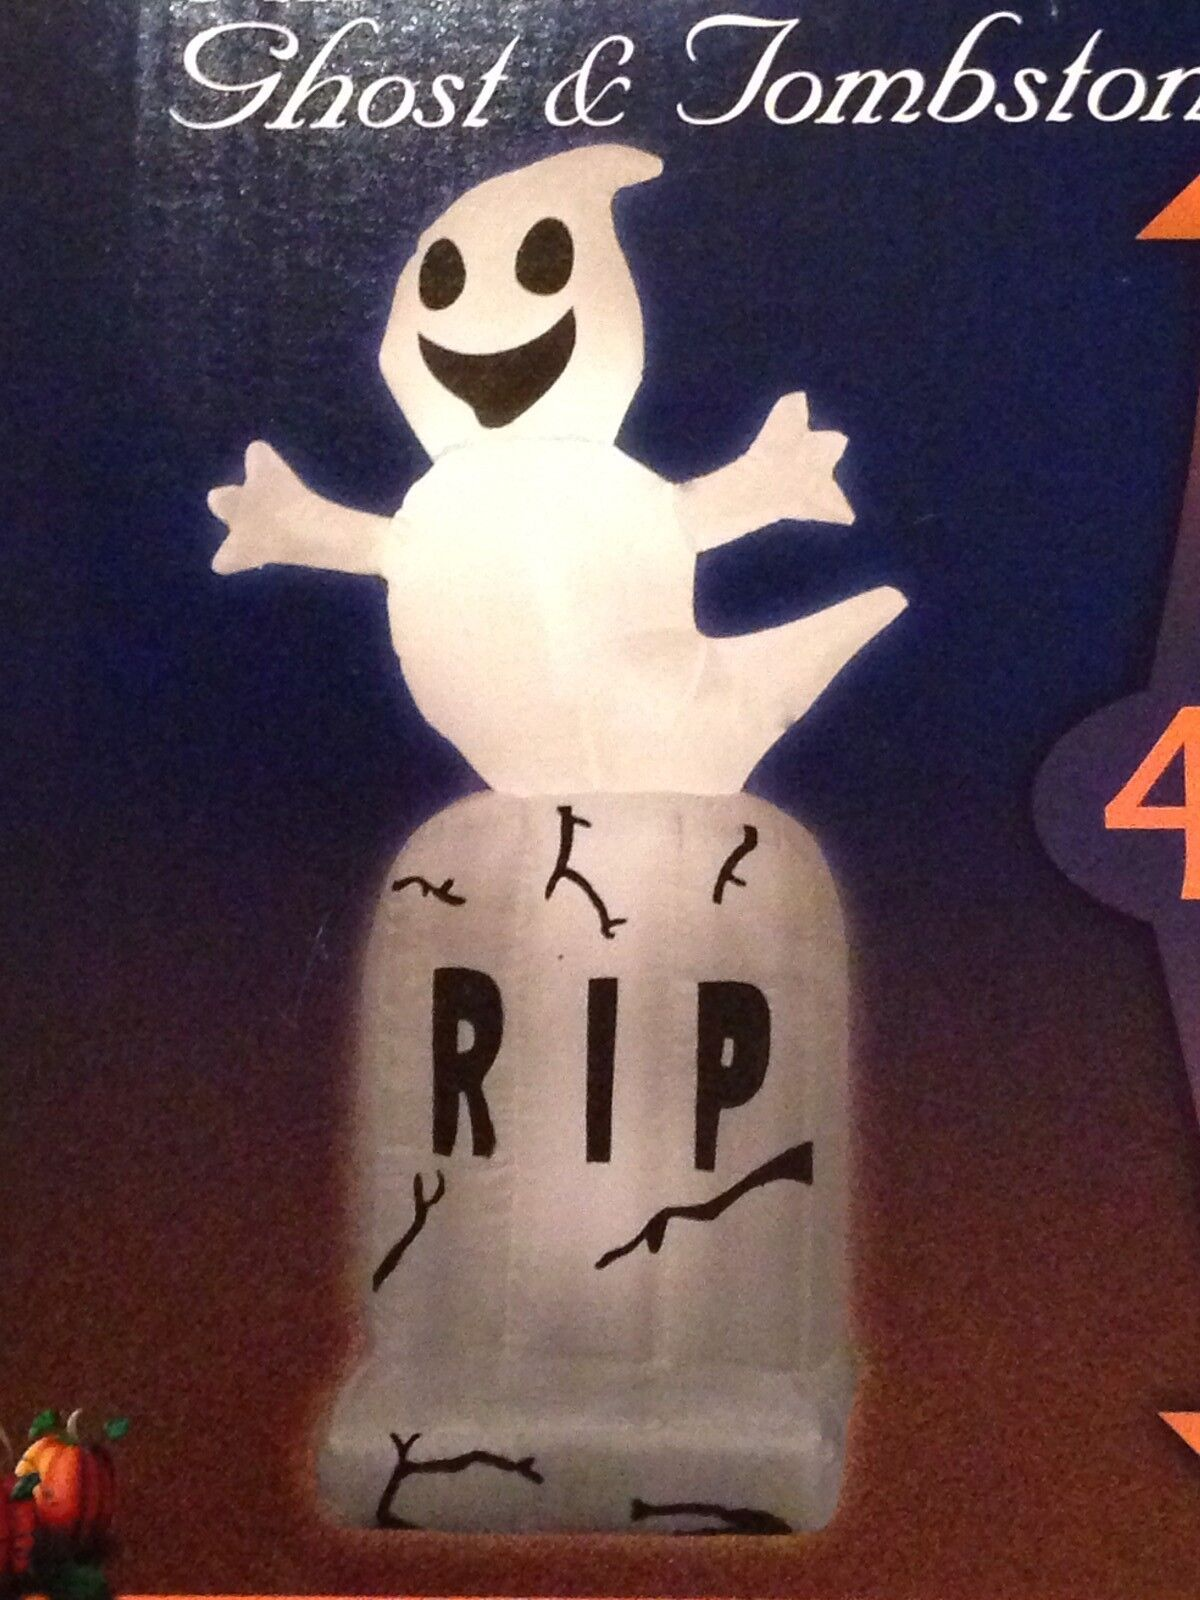 Last 4' Halloween Led Ghost On A Tombstone Airblown/inflatable Decoration